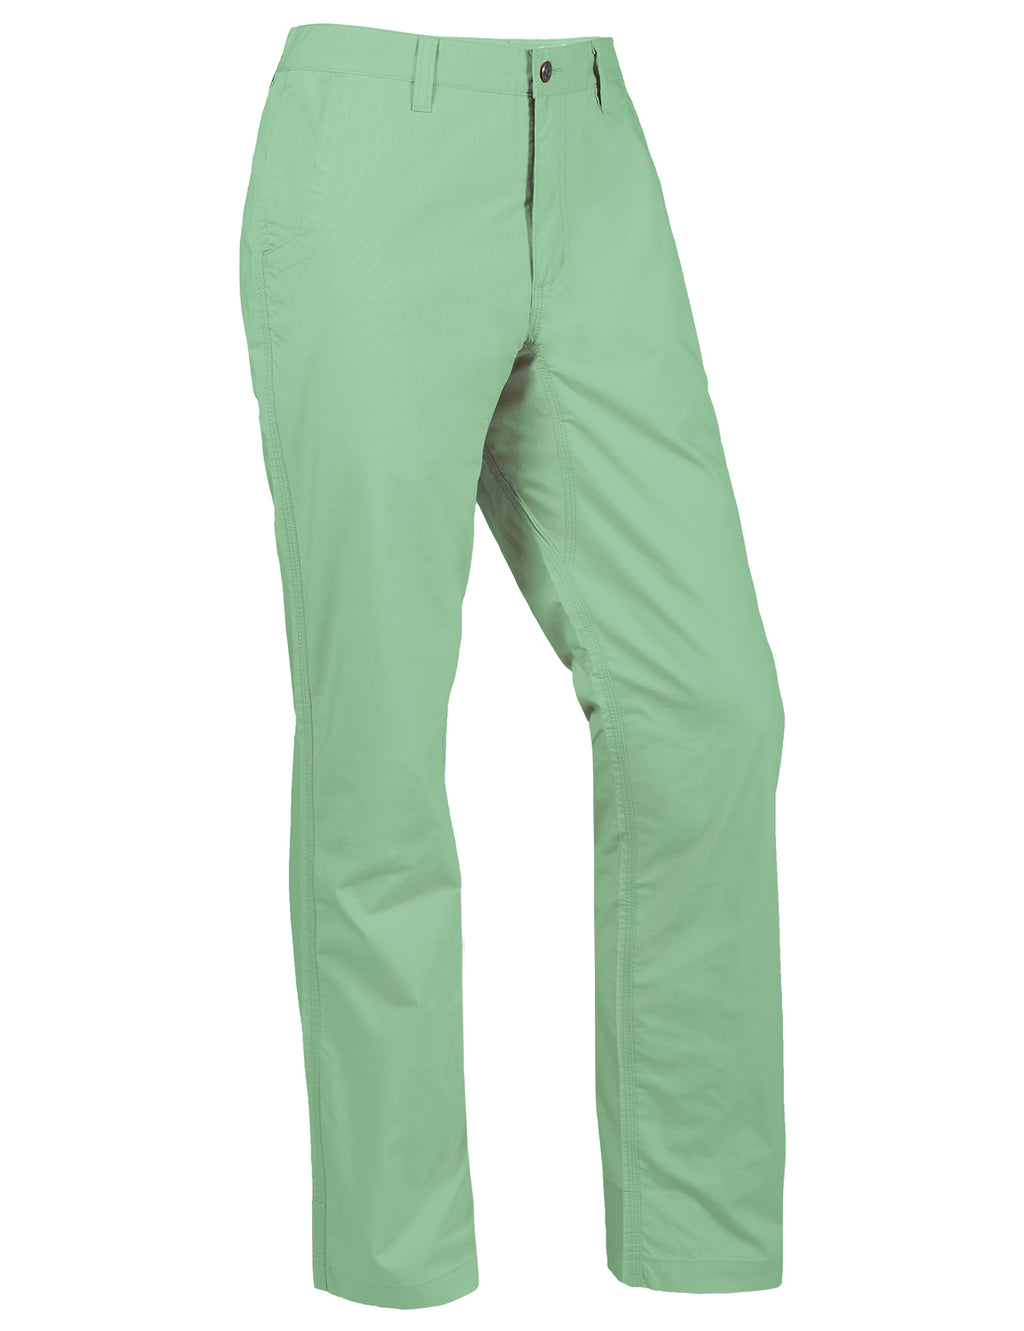 Men's Stretch Poplin Pant | Relaxed Fit / Oregano